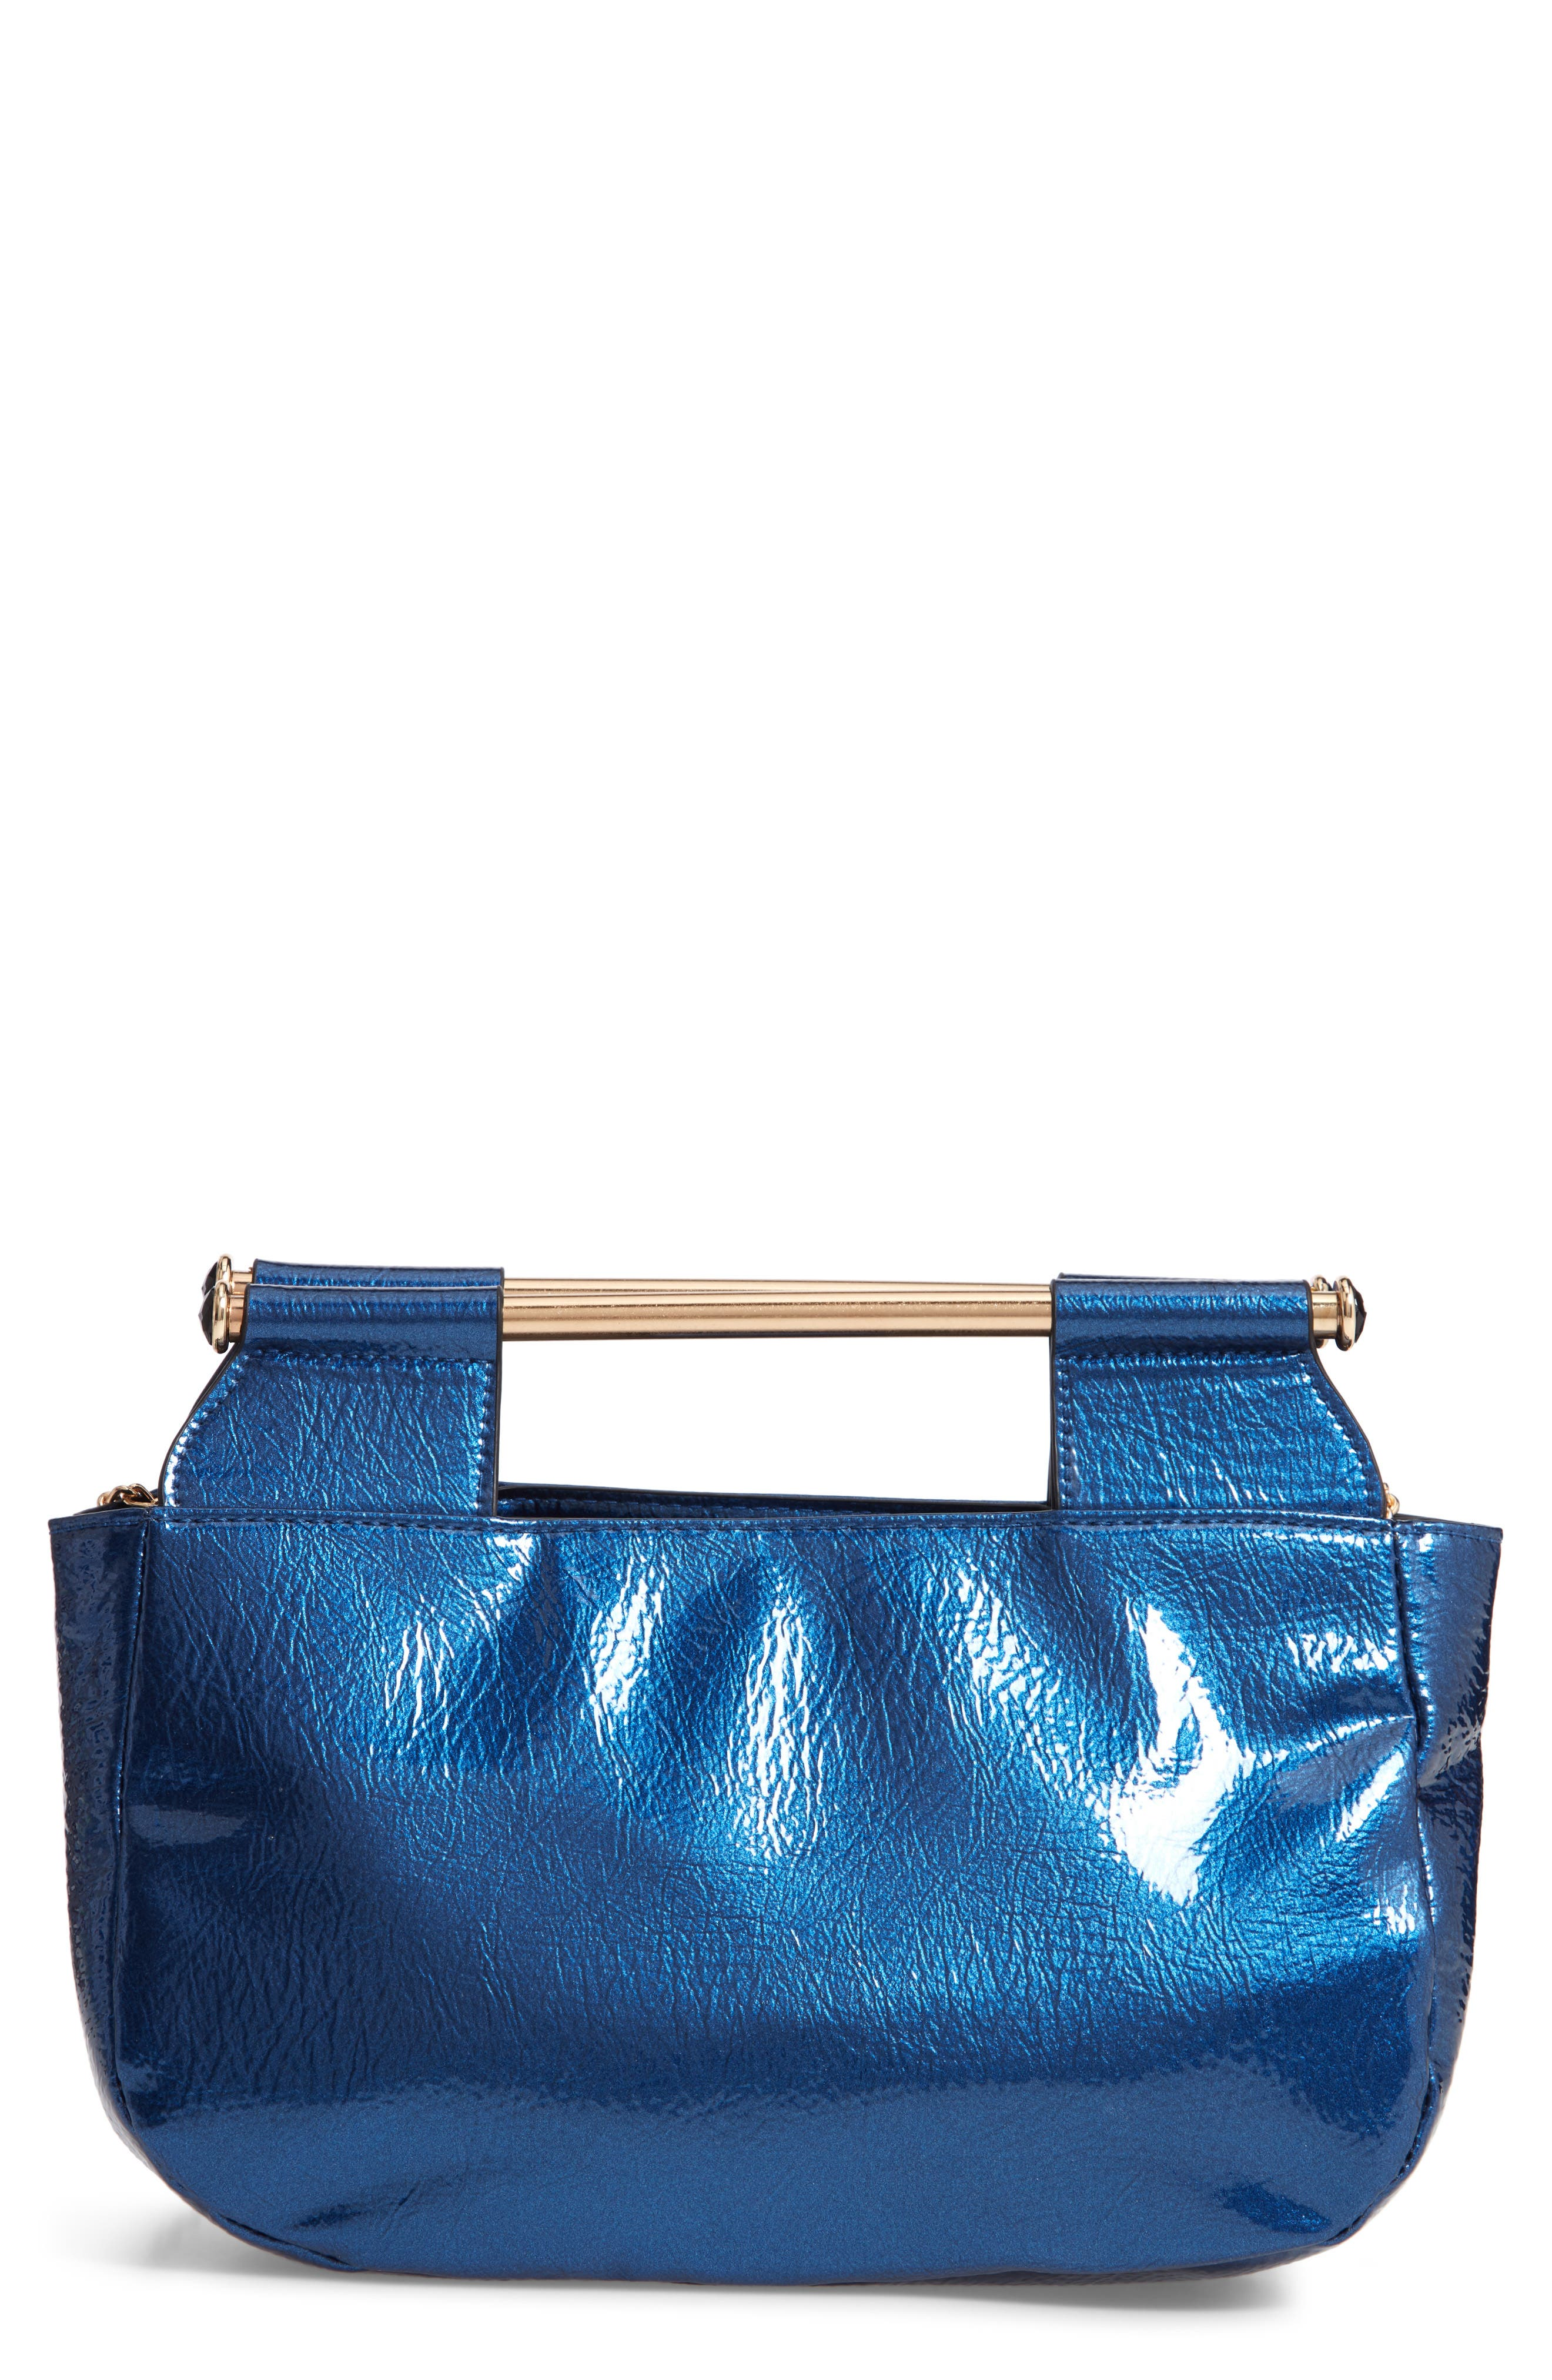 Patent Leather Crossbody Bag,                         Main,                         color, 400